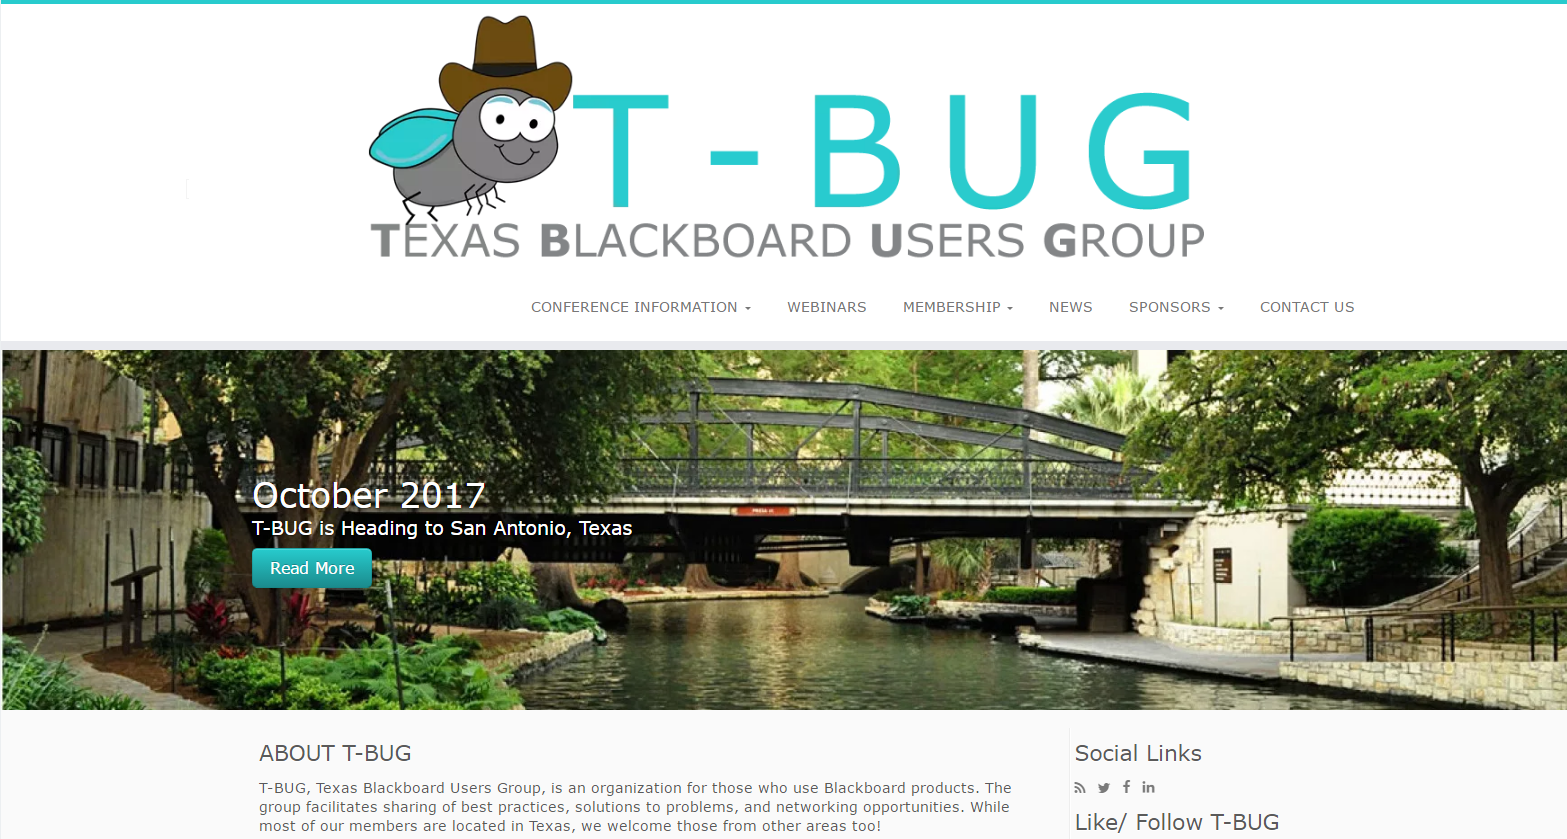 Landing page of the T-BUG Website